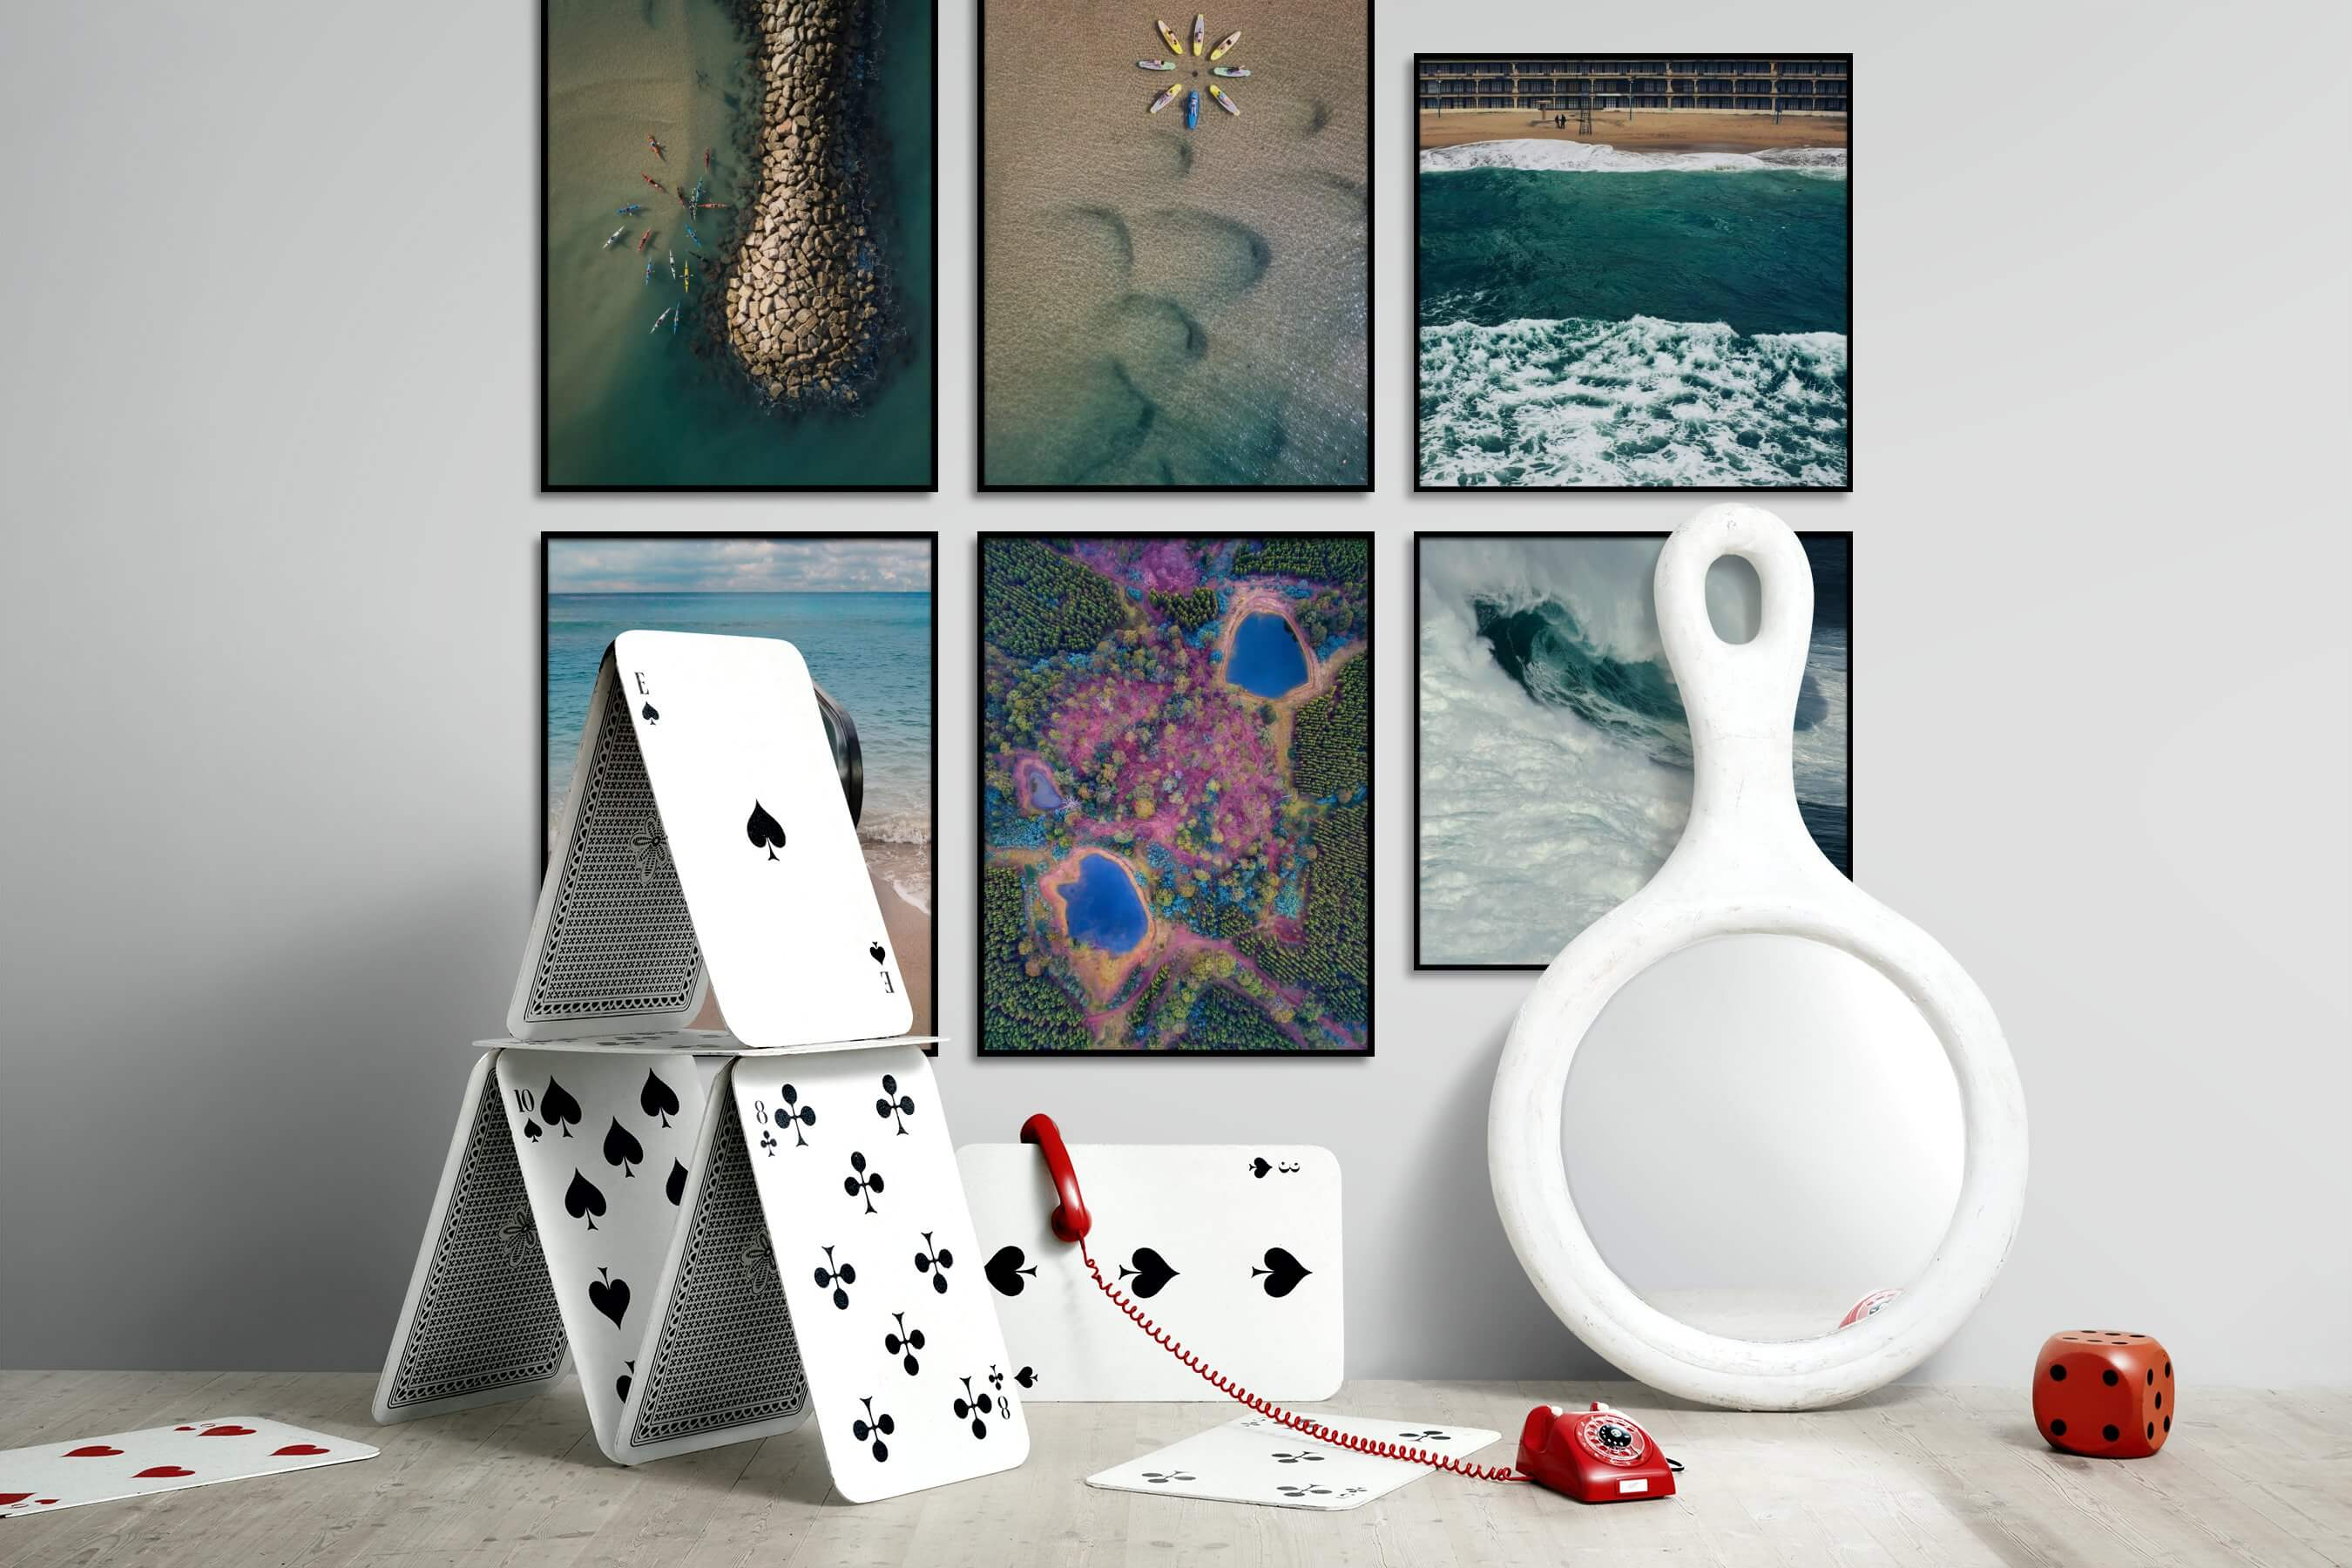 Gallery wall idea with six framed pictures arranged on a wall depicting For the Moderate, Beach & Water, For the Minimalist, Mindfulness, Artsy, and Nature